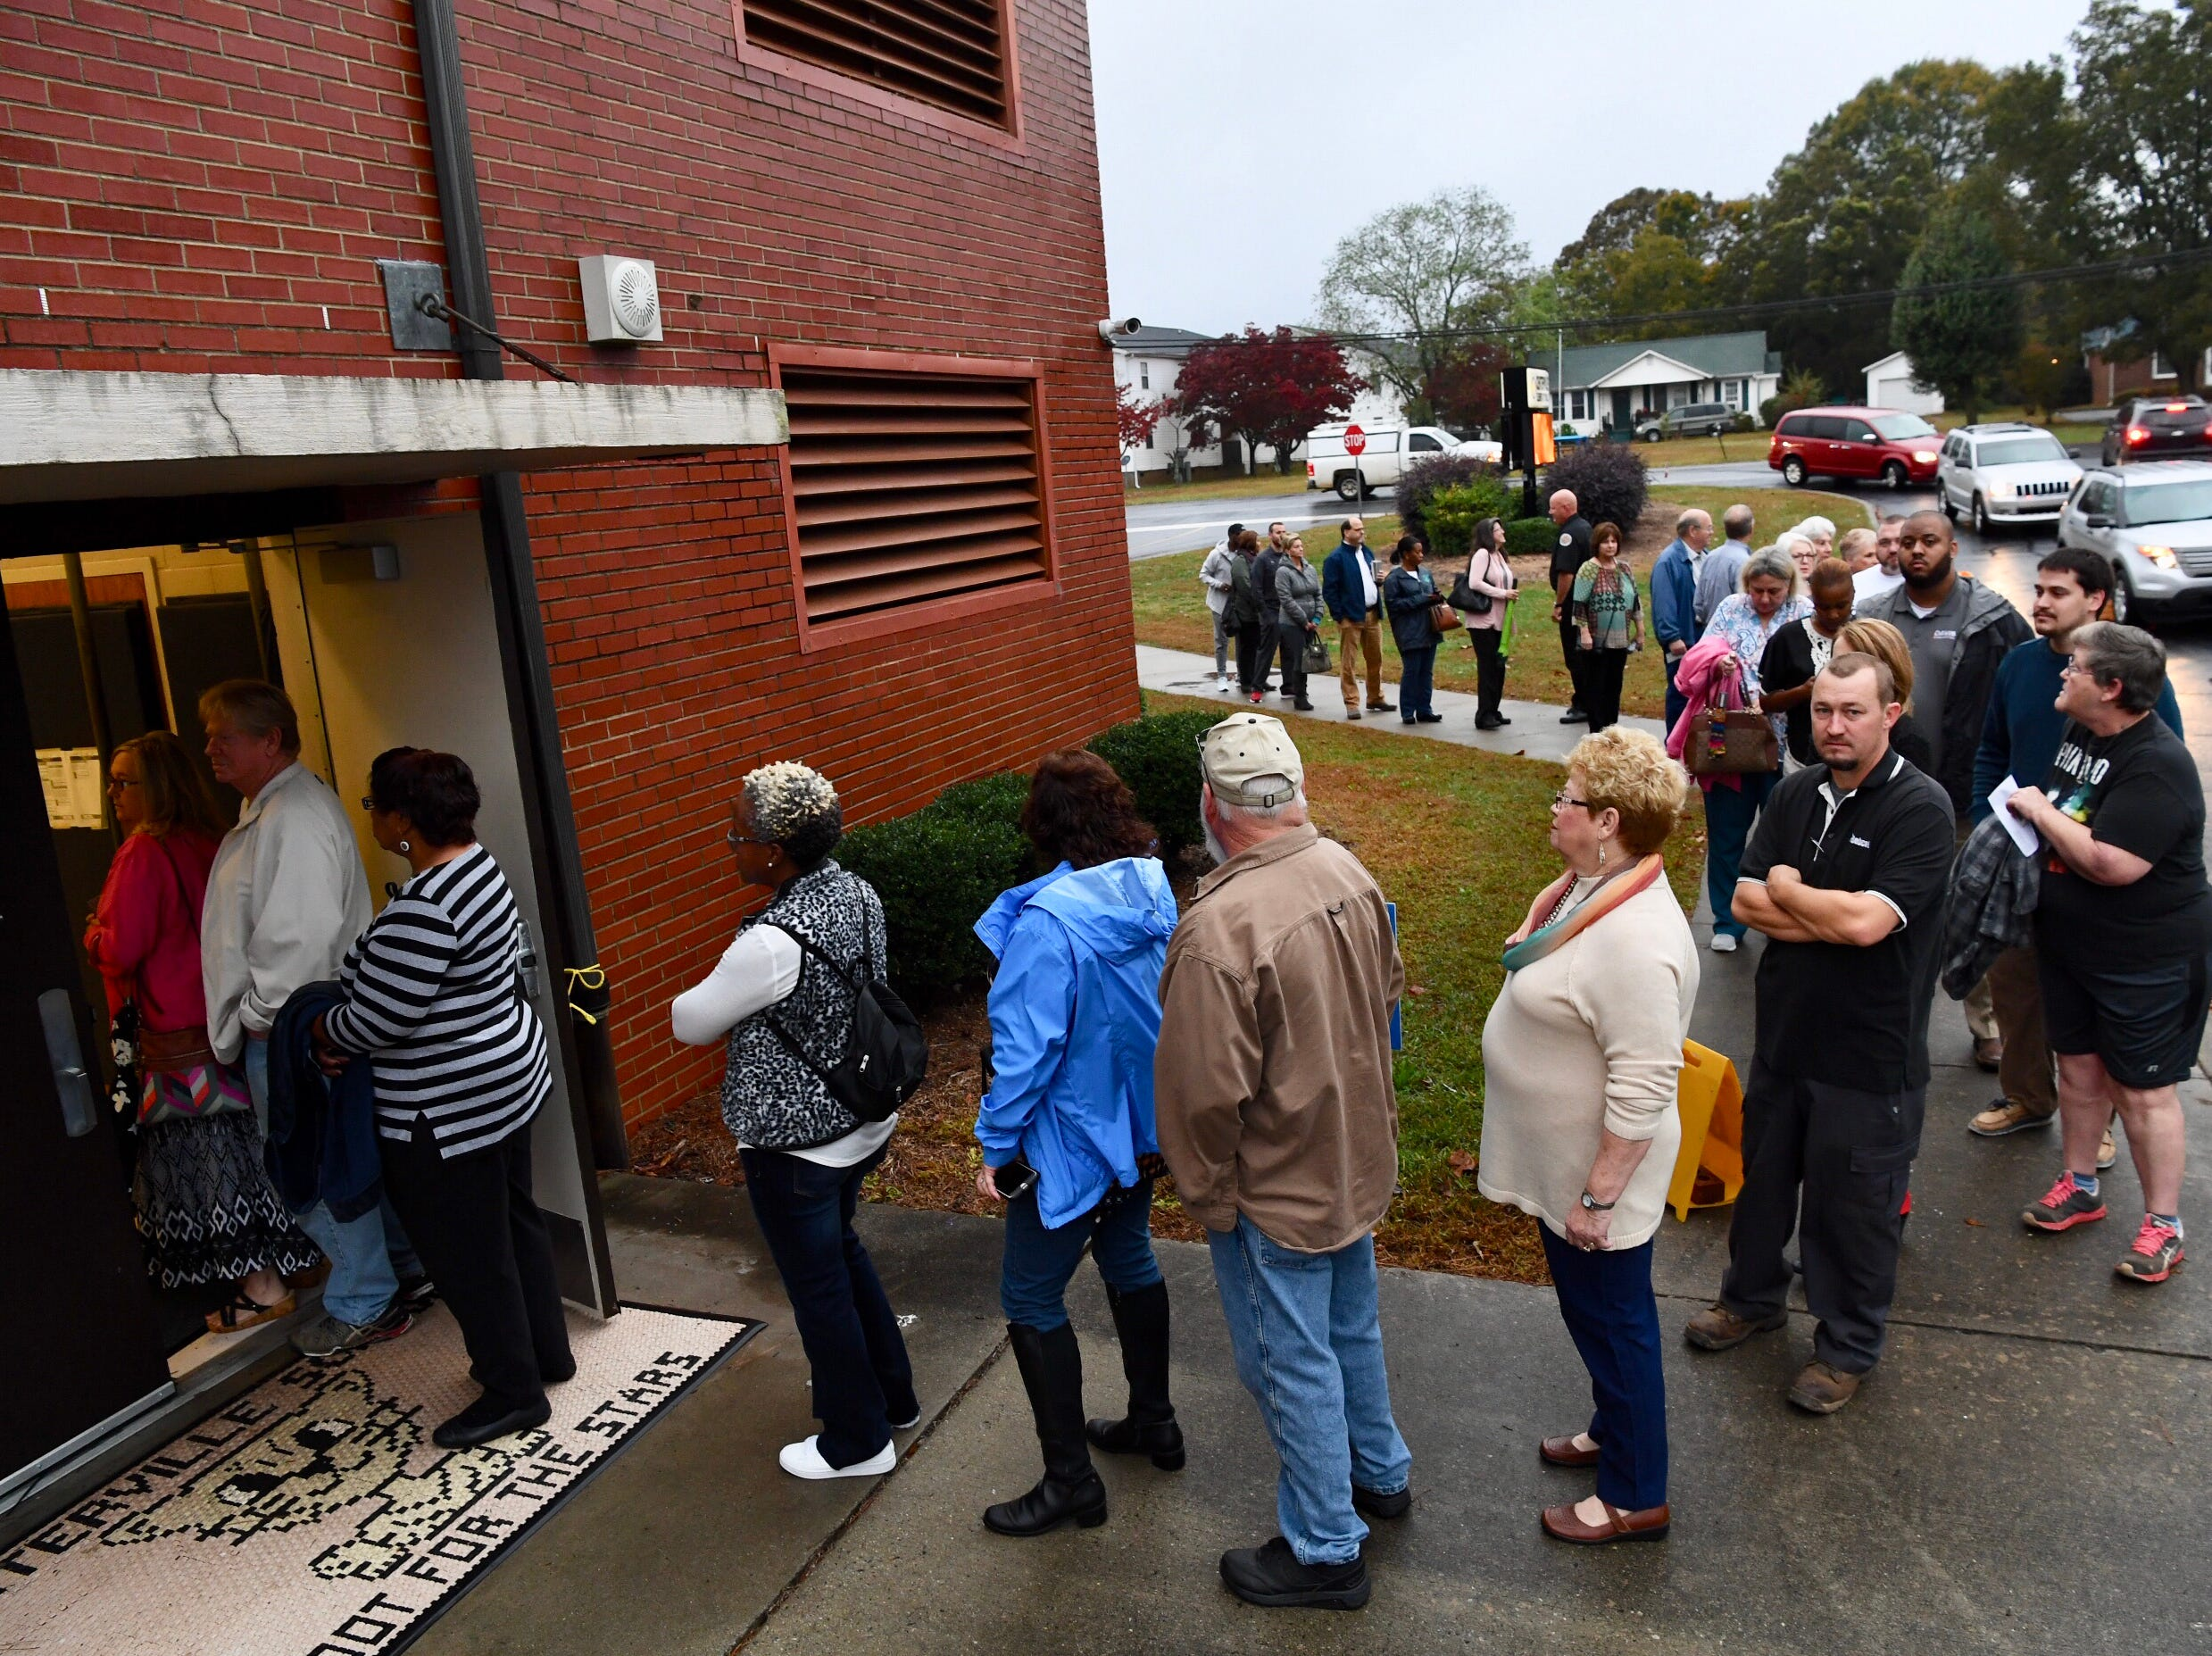 Crowds picked up as polling opened in Anderson at Centerville precinct, one of Anderson County's largest, on Tuesday, Nov. 6, 2018. South Carolina voters cast their ballot in the 2018 midterm elections to pick a governor and choose candidates in several local and statewide races.